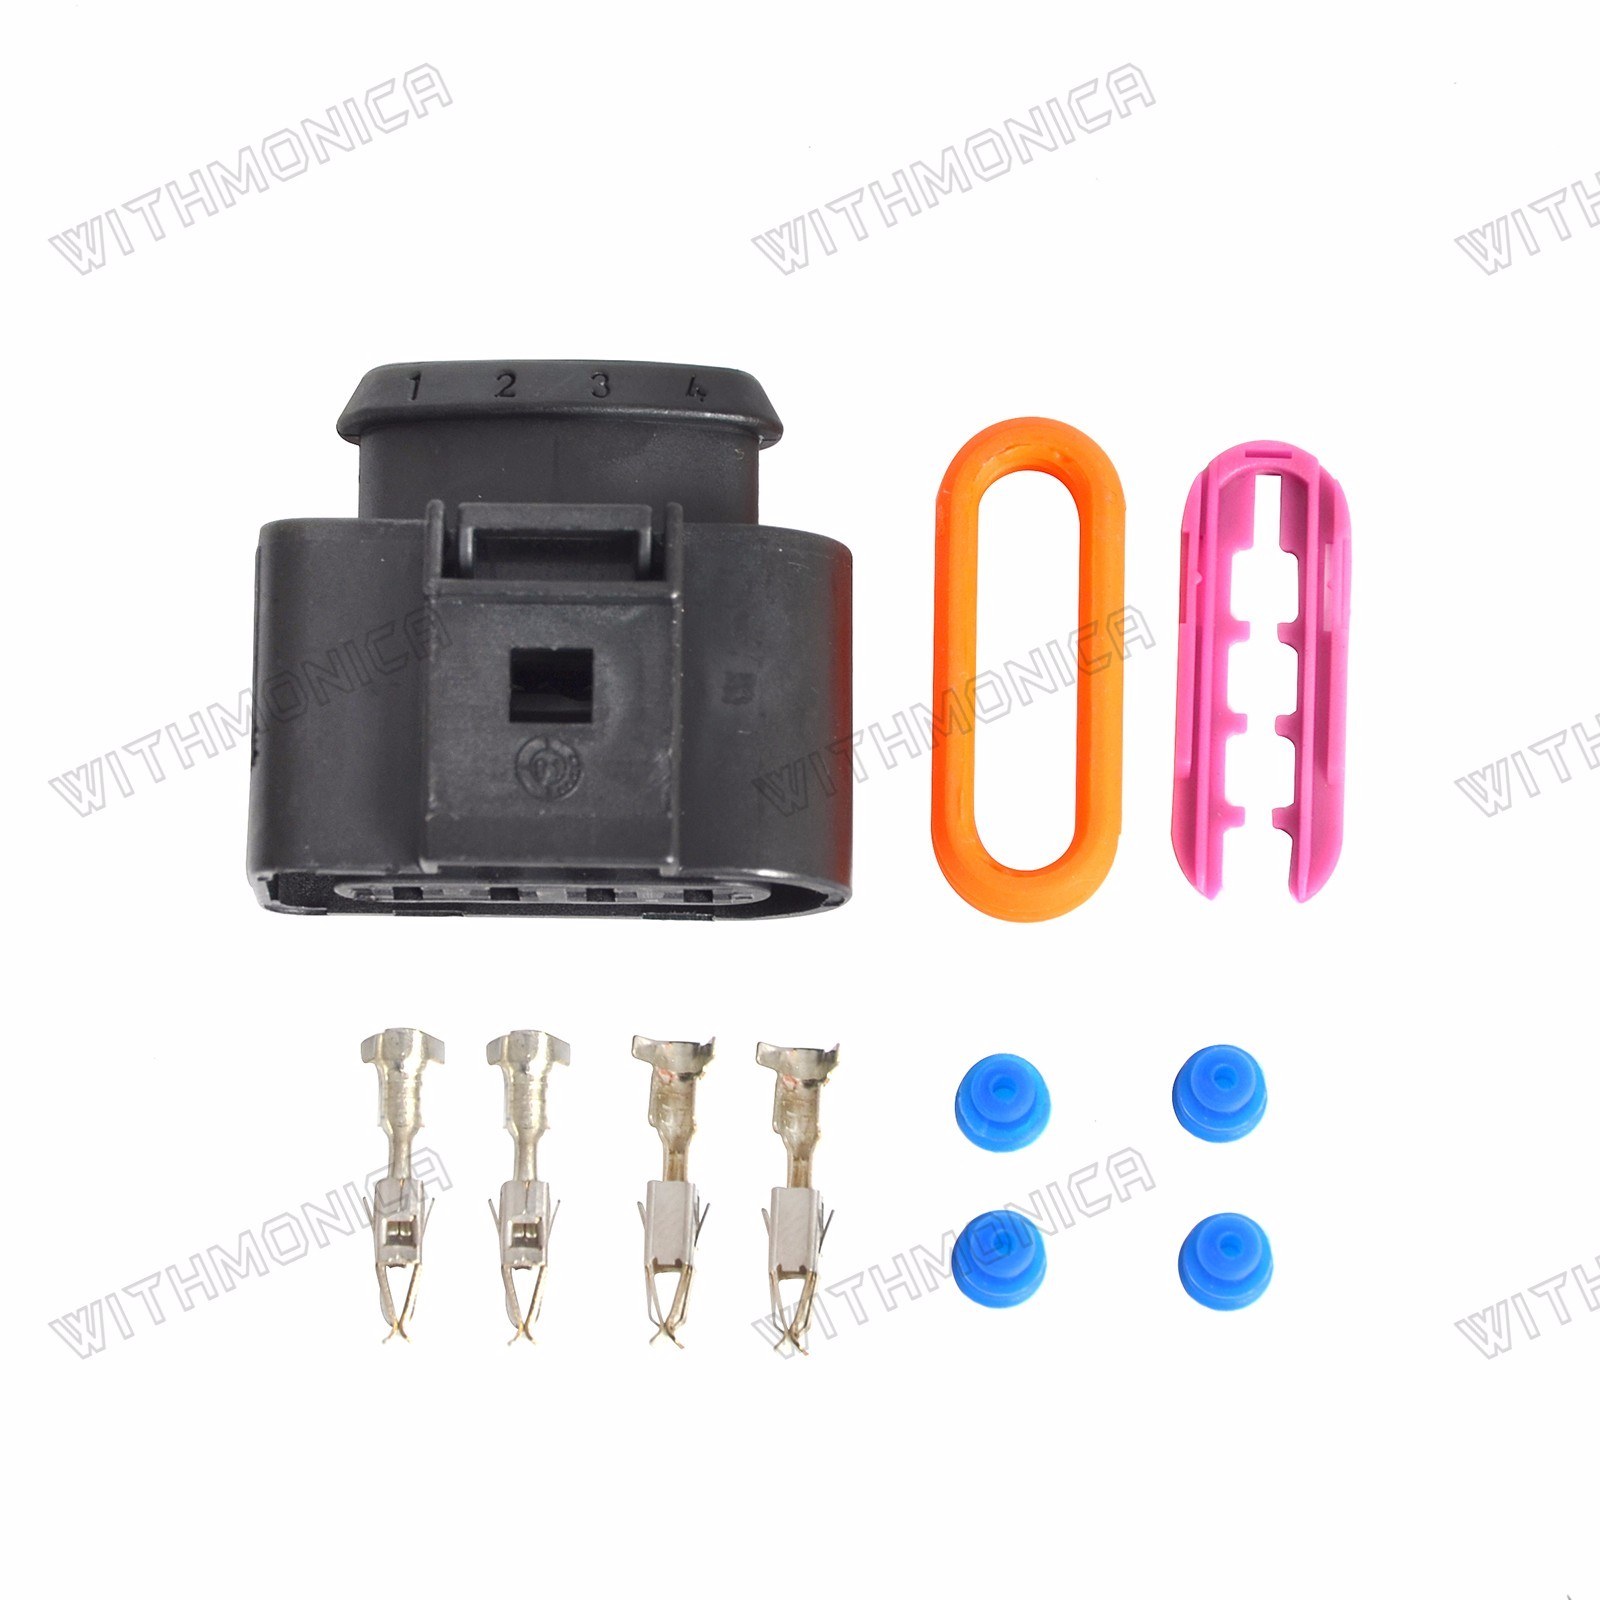 Ignition Coil Wiring Harness Connector Repair Kit Fits For Audi A4 Vw Clips A6 A8passat Jetta